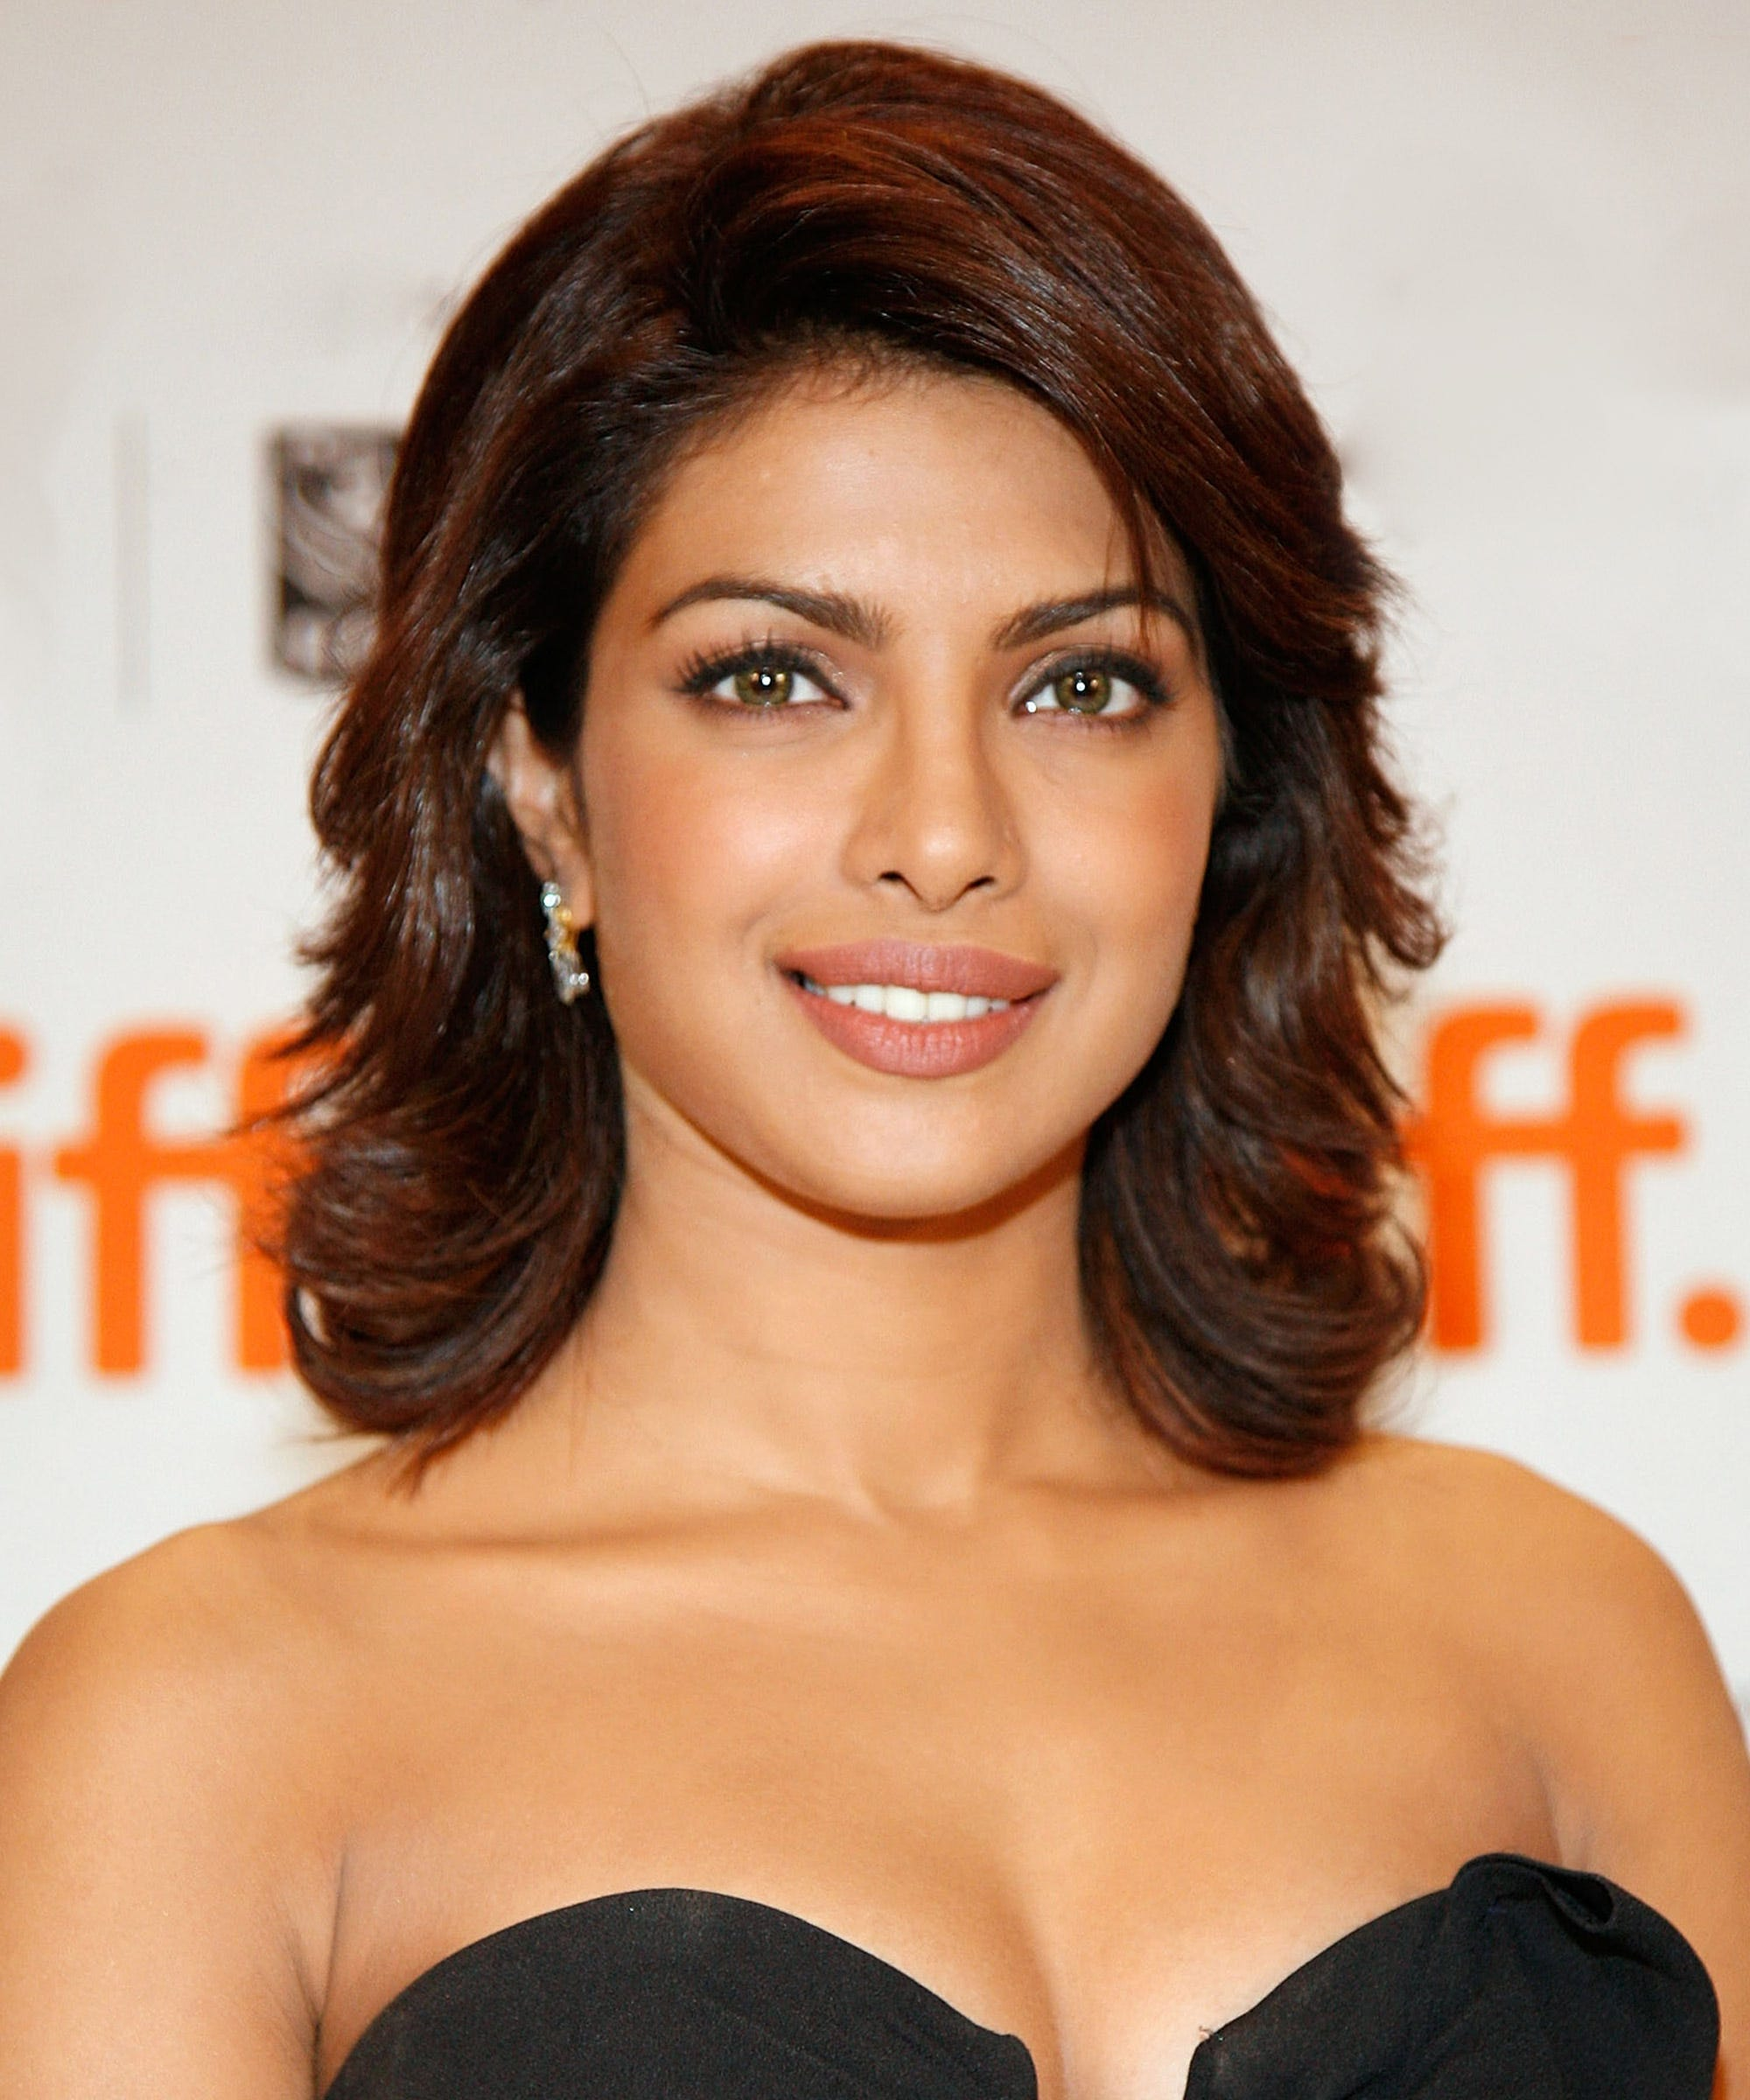 Priyanka Chopra Beauty Transformation Over The Years